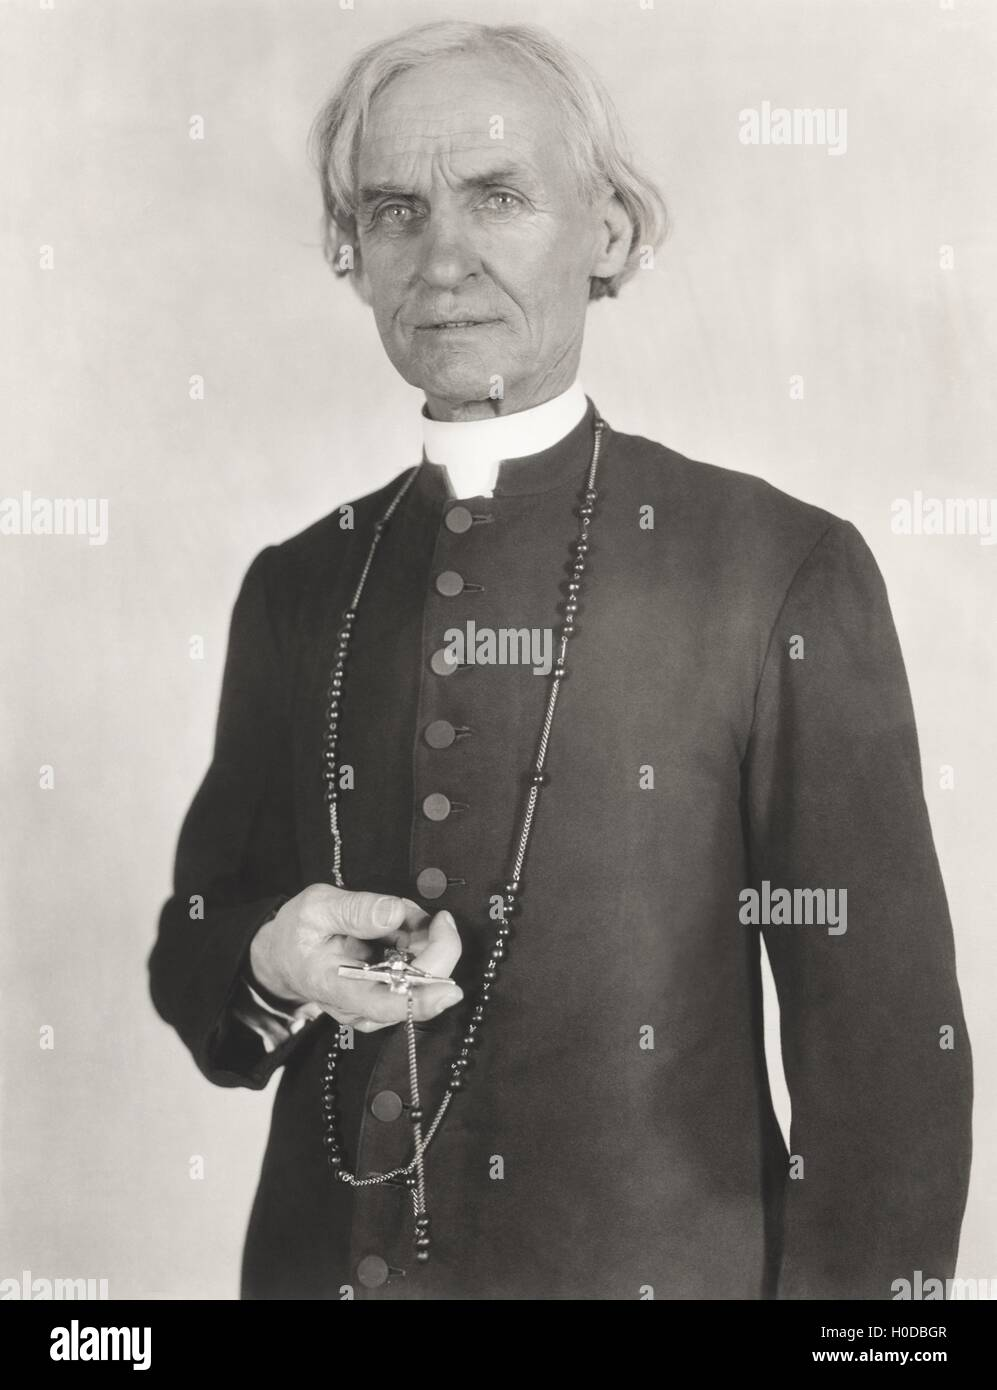 Portrait of a priest - Stock Image